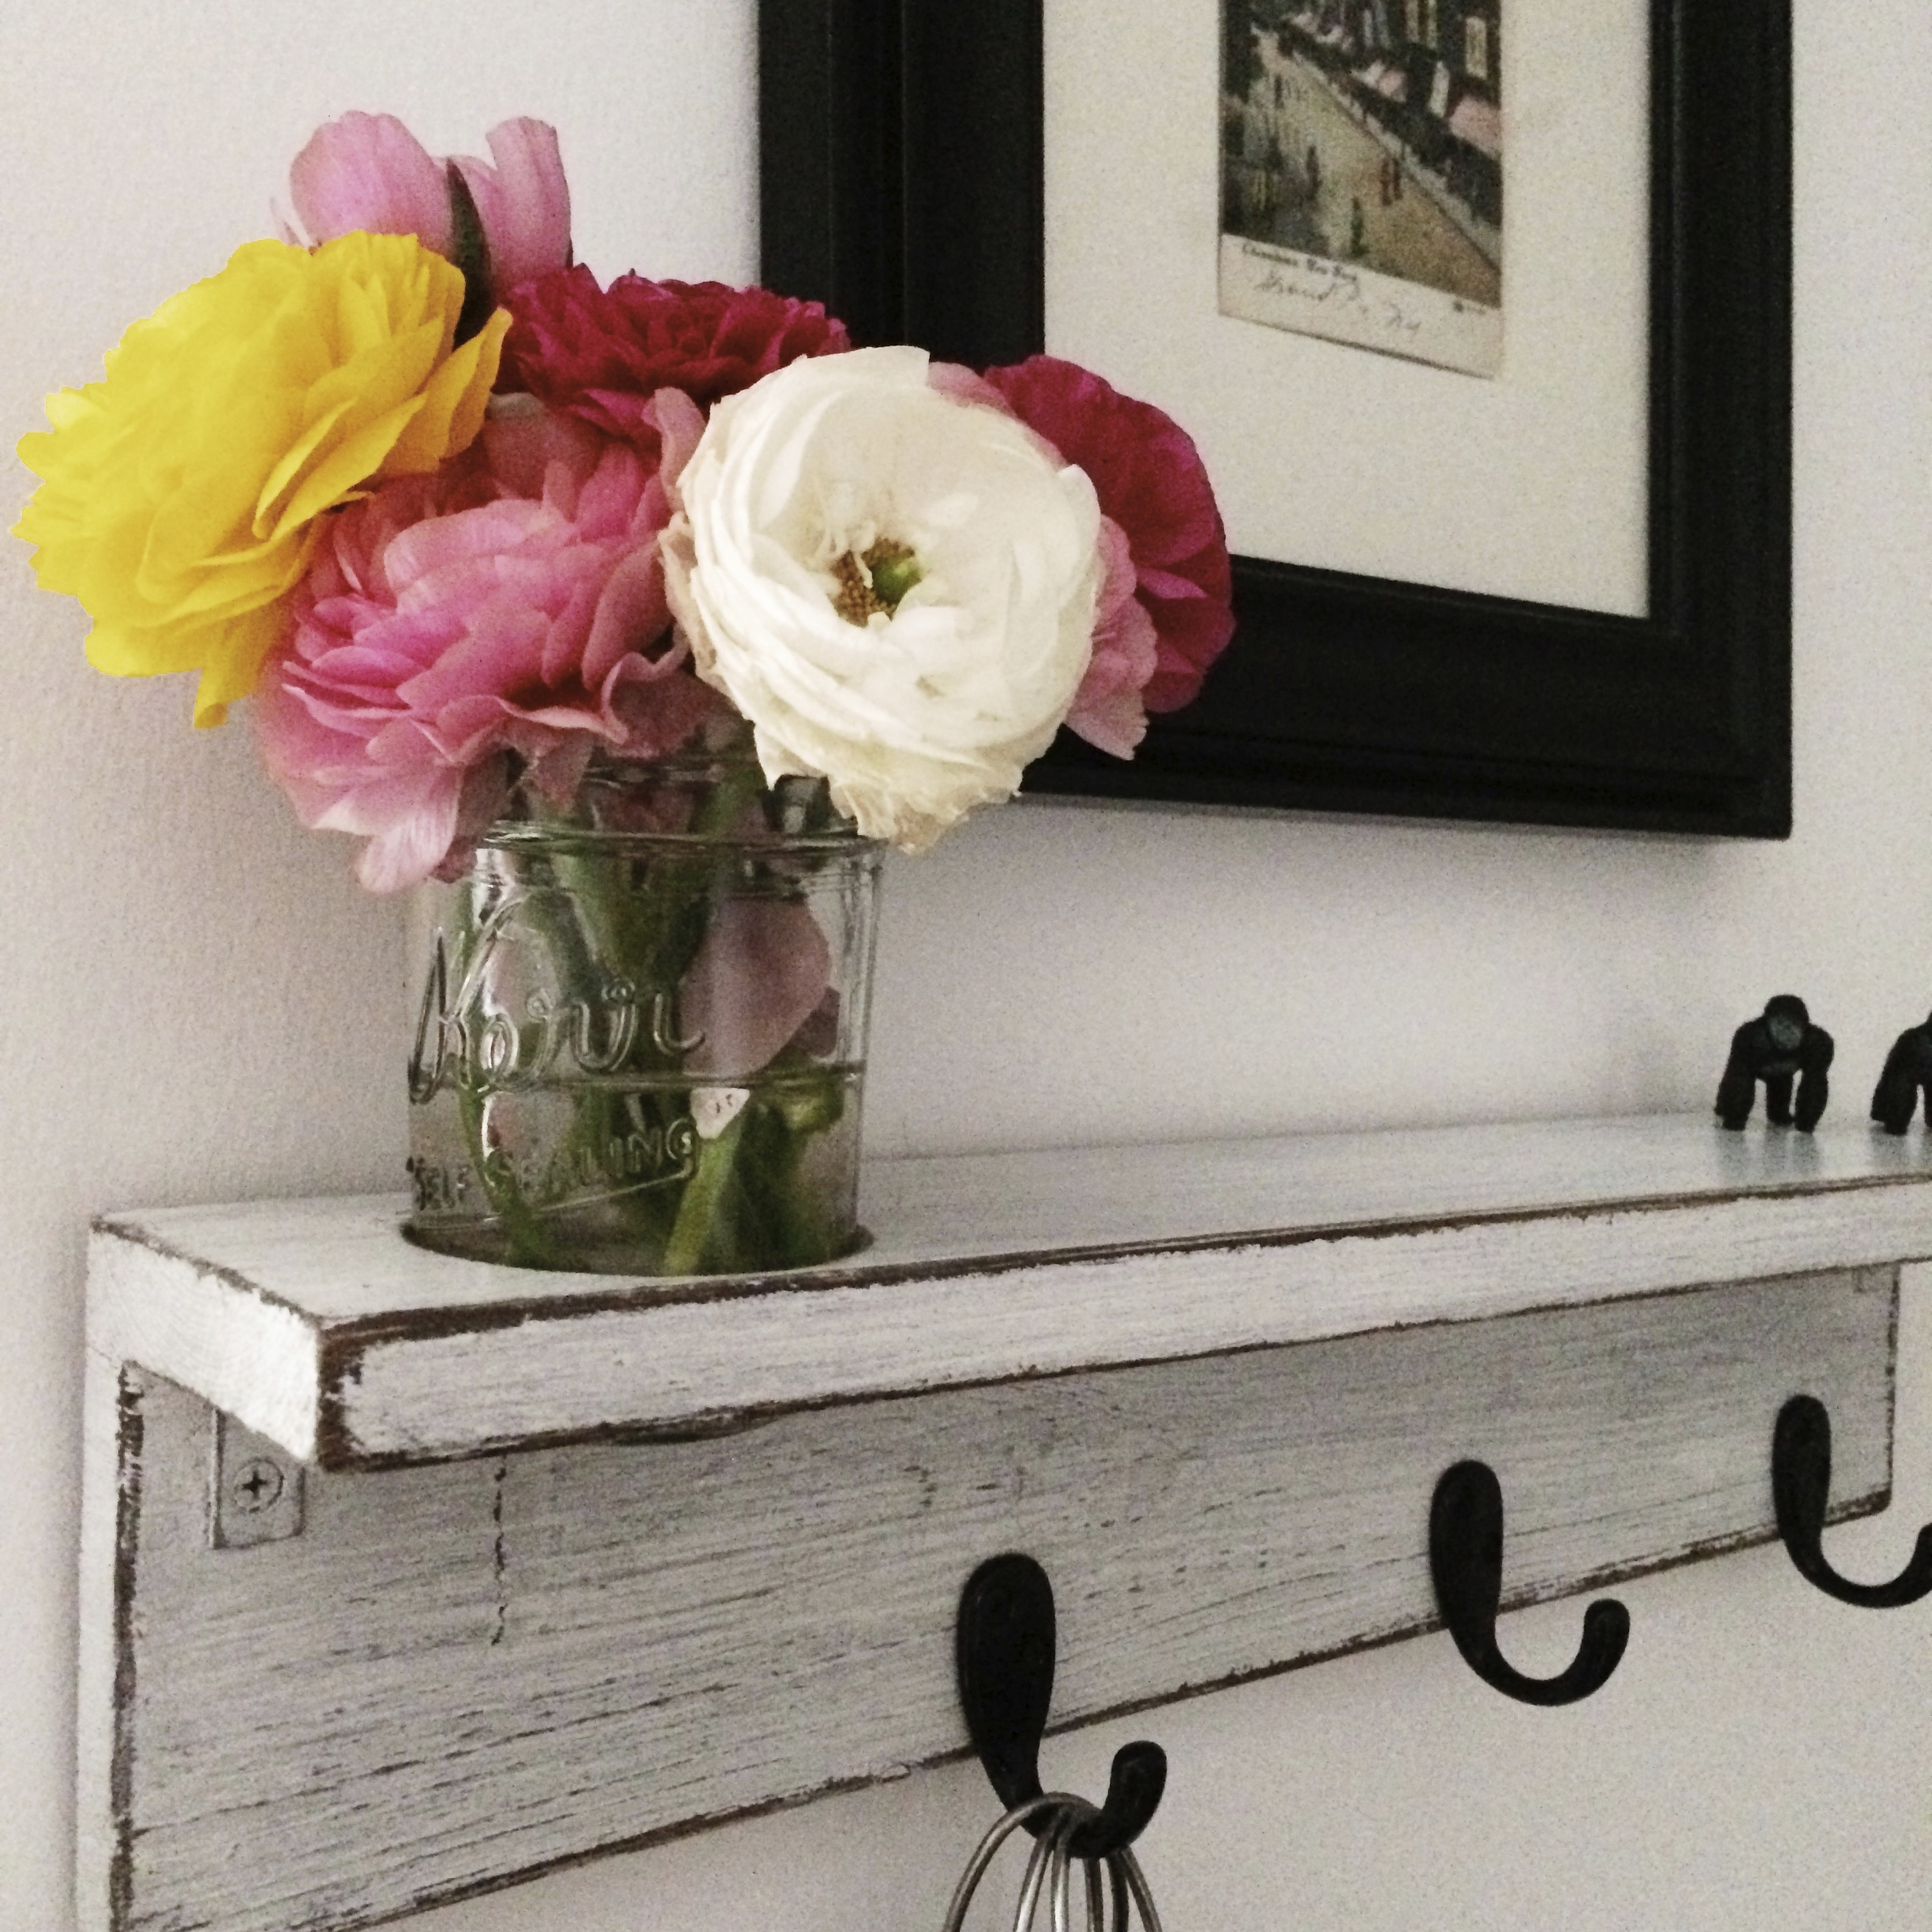 this shelf, and the cutout for a jar of flowers. (and those tiny gorillas creeping up in the corner.)